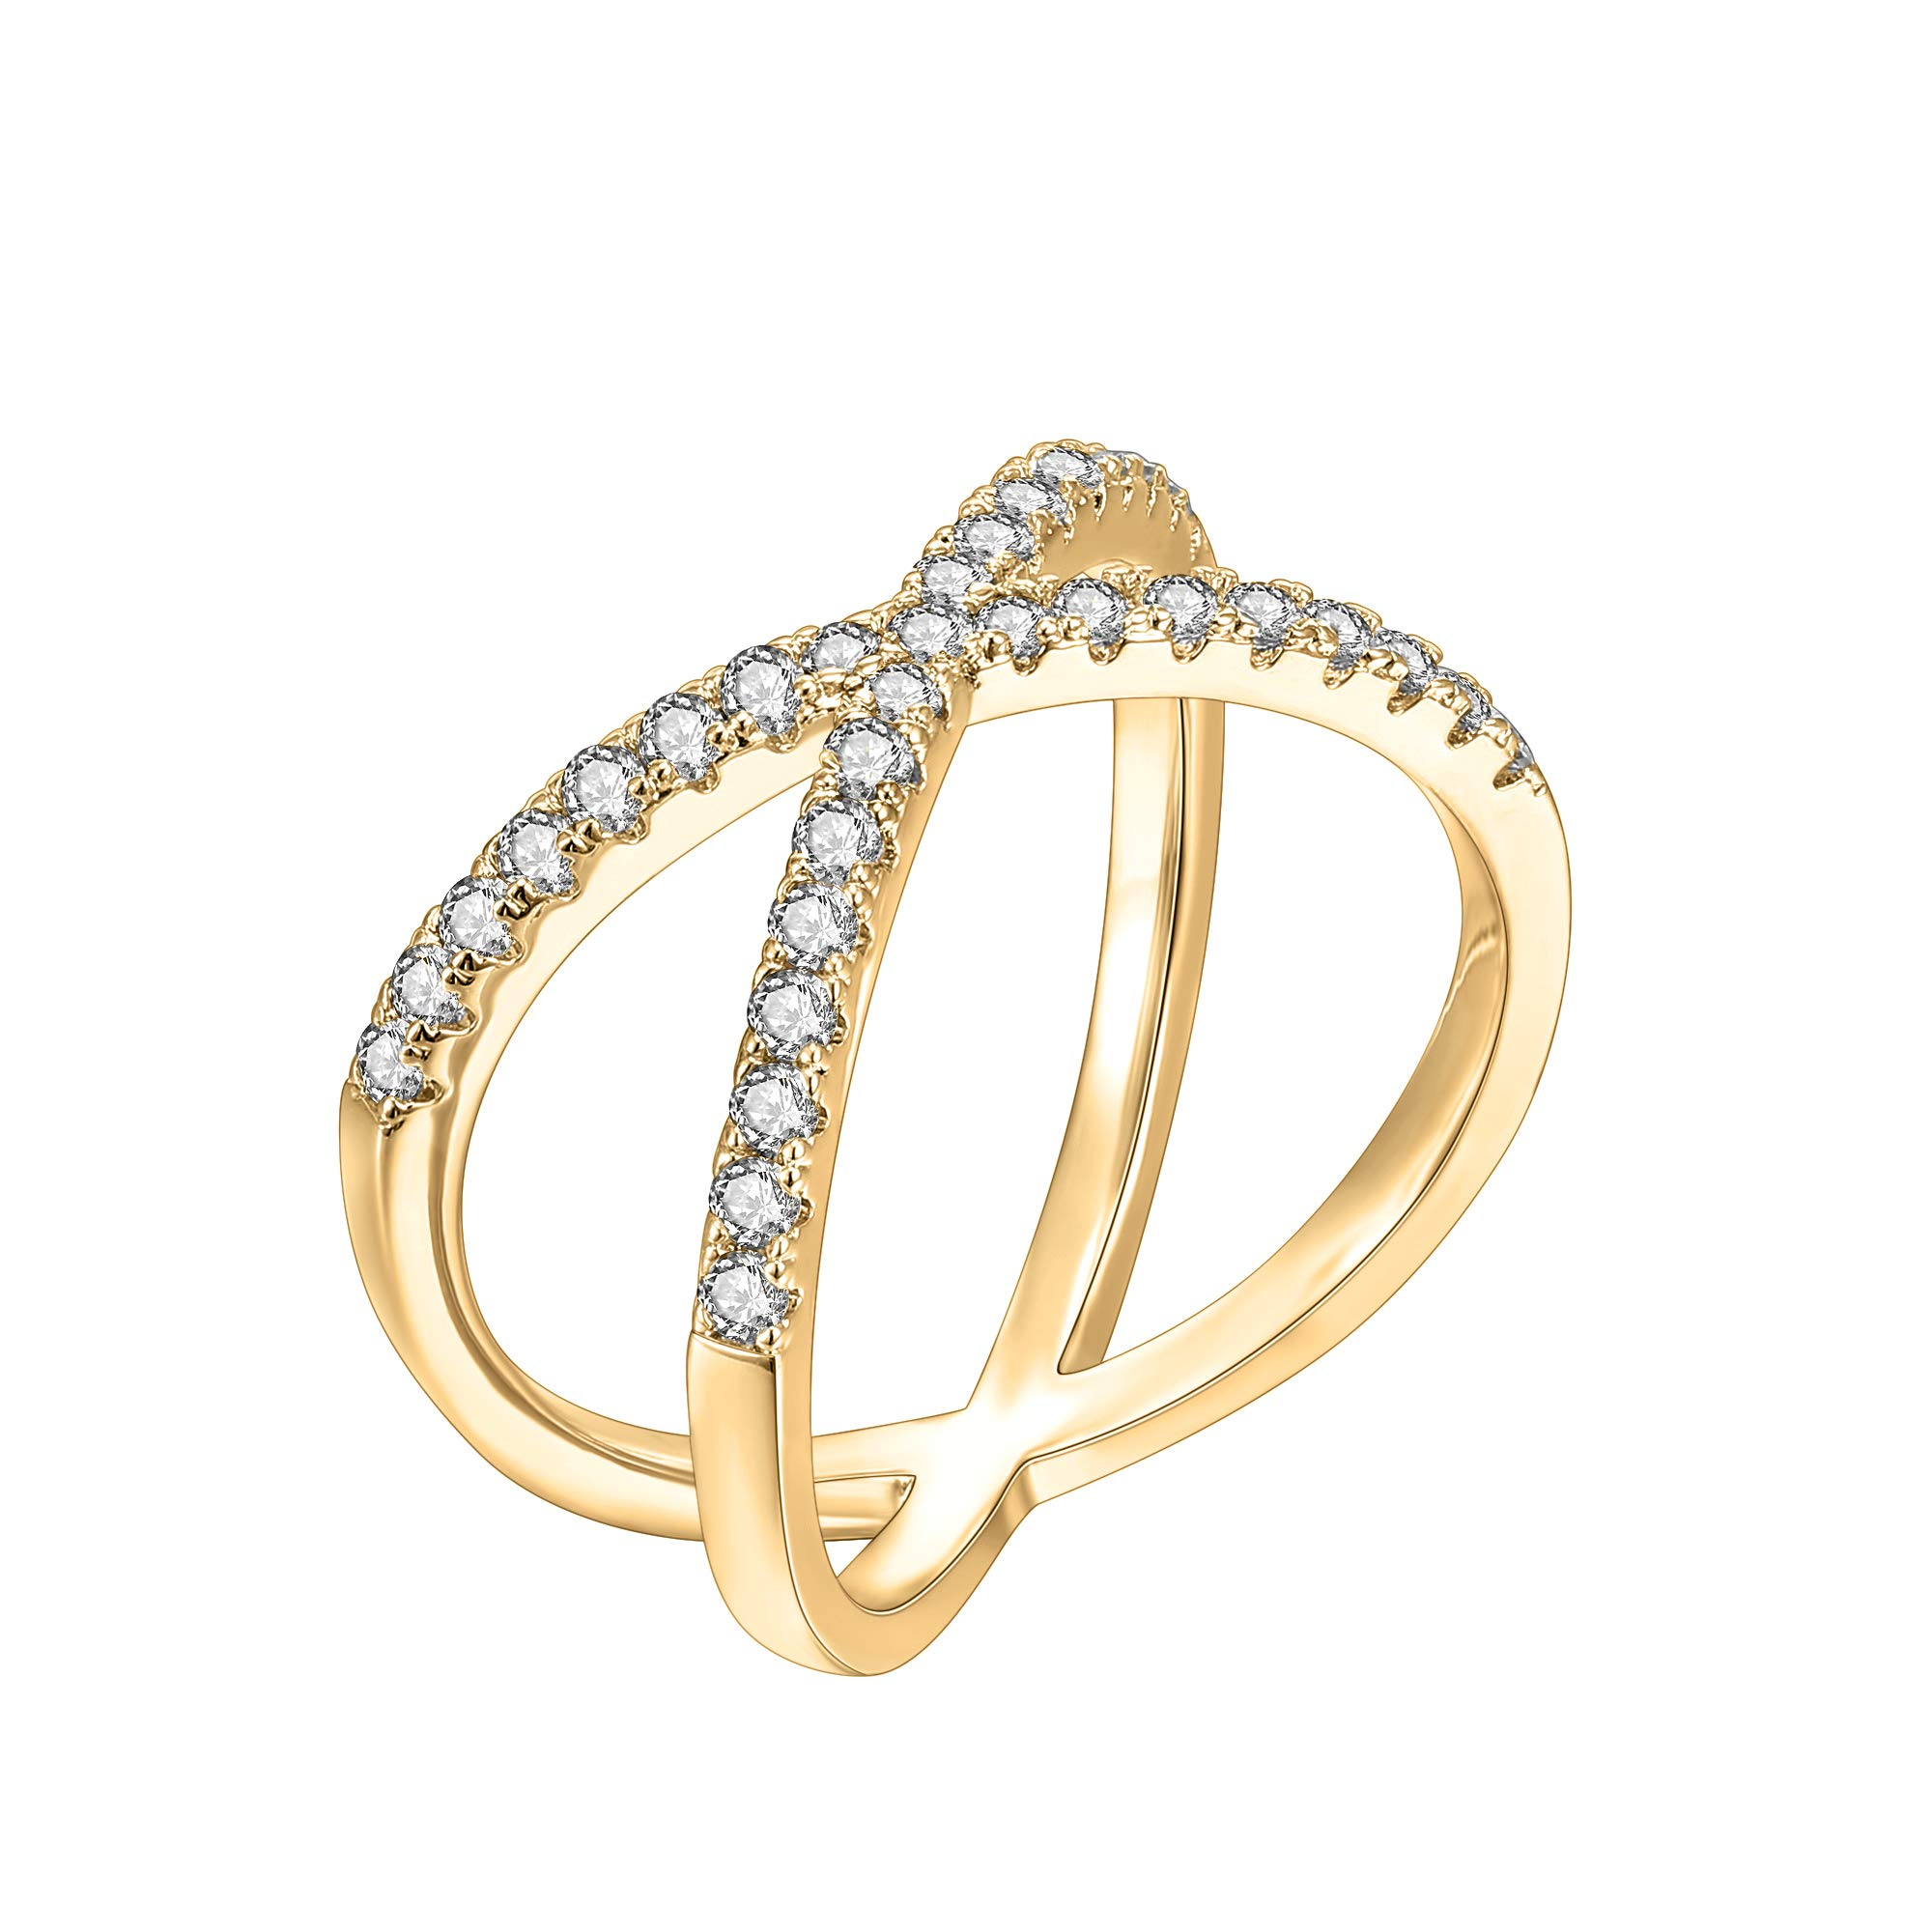 PAVOI 14K Gold Plated Crossover X Stackable Rings | Yellow Gold Rings for Women - Size 7 by PAVOI